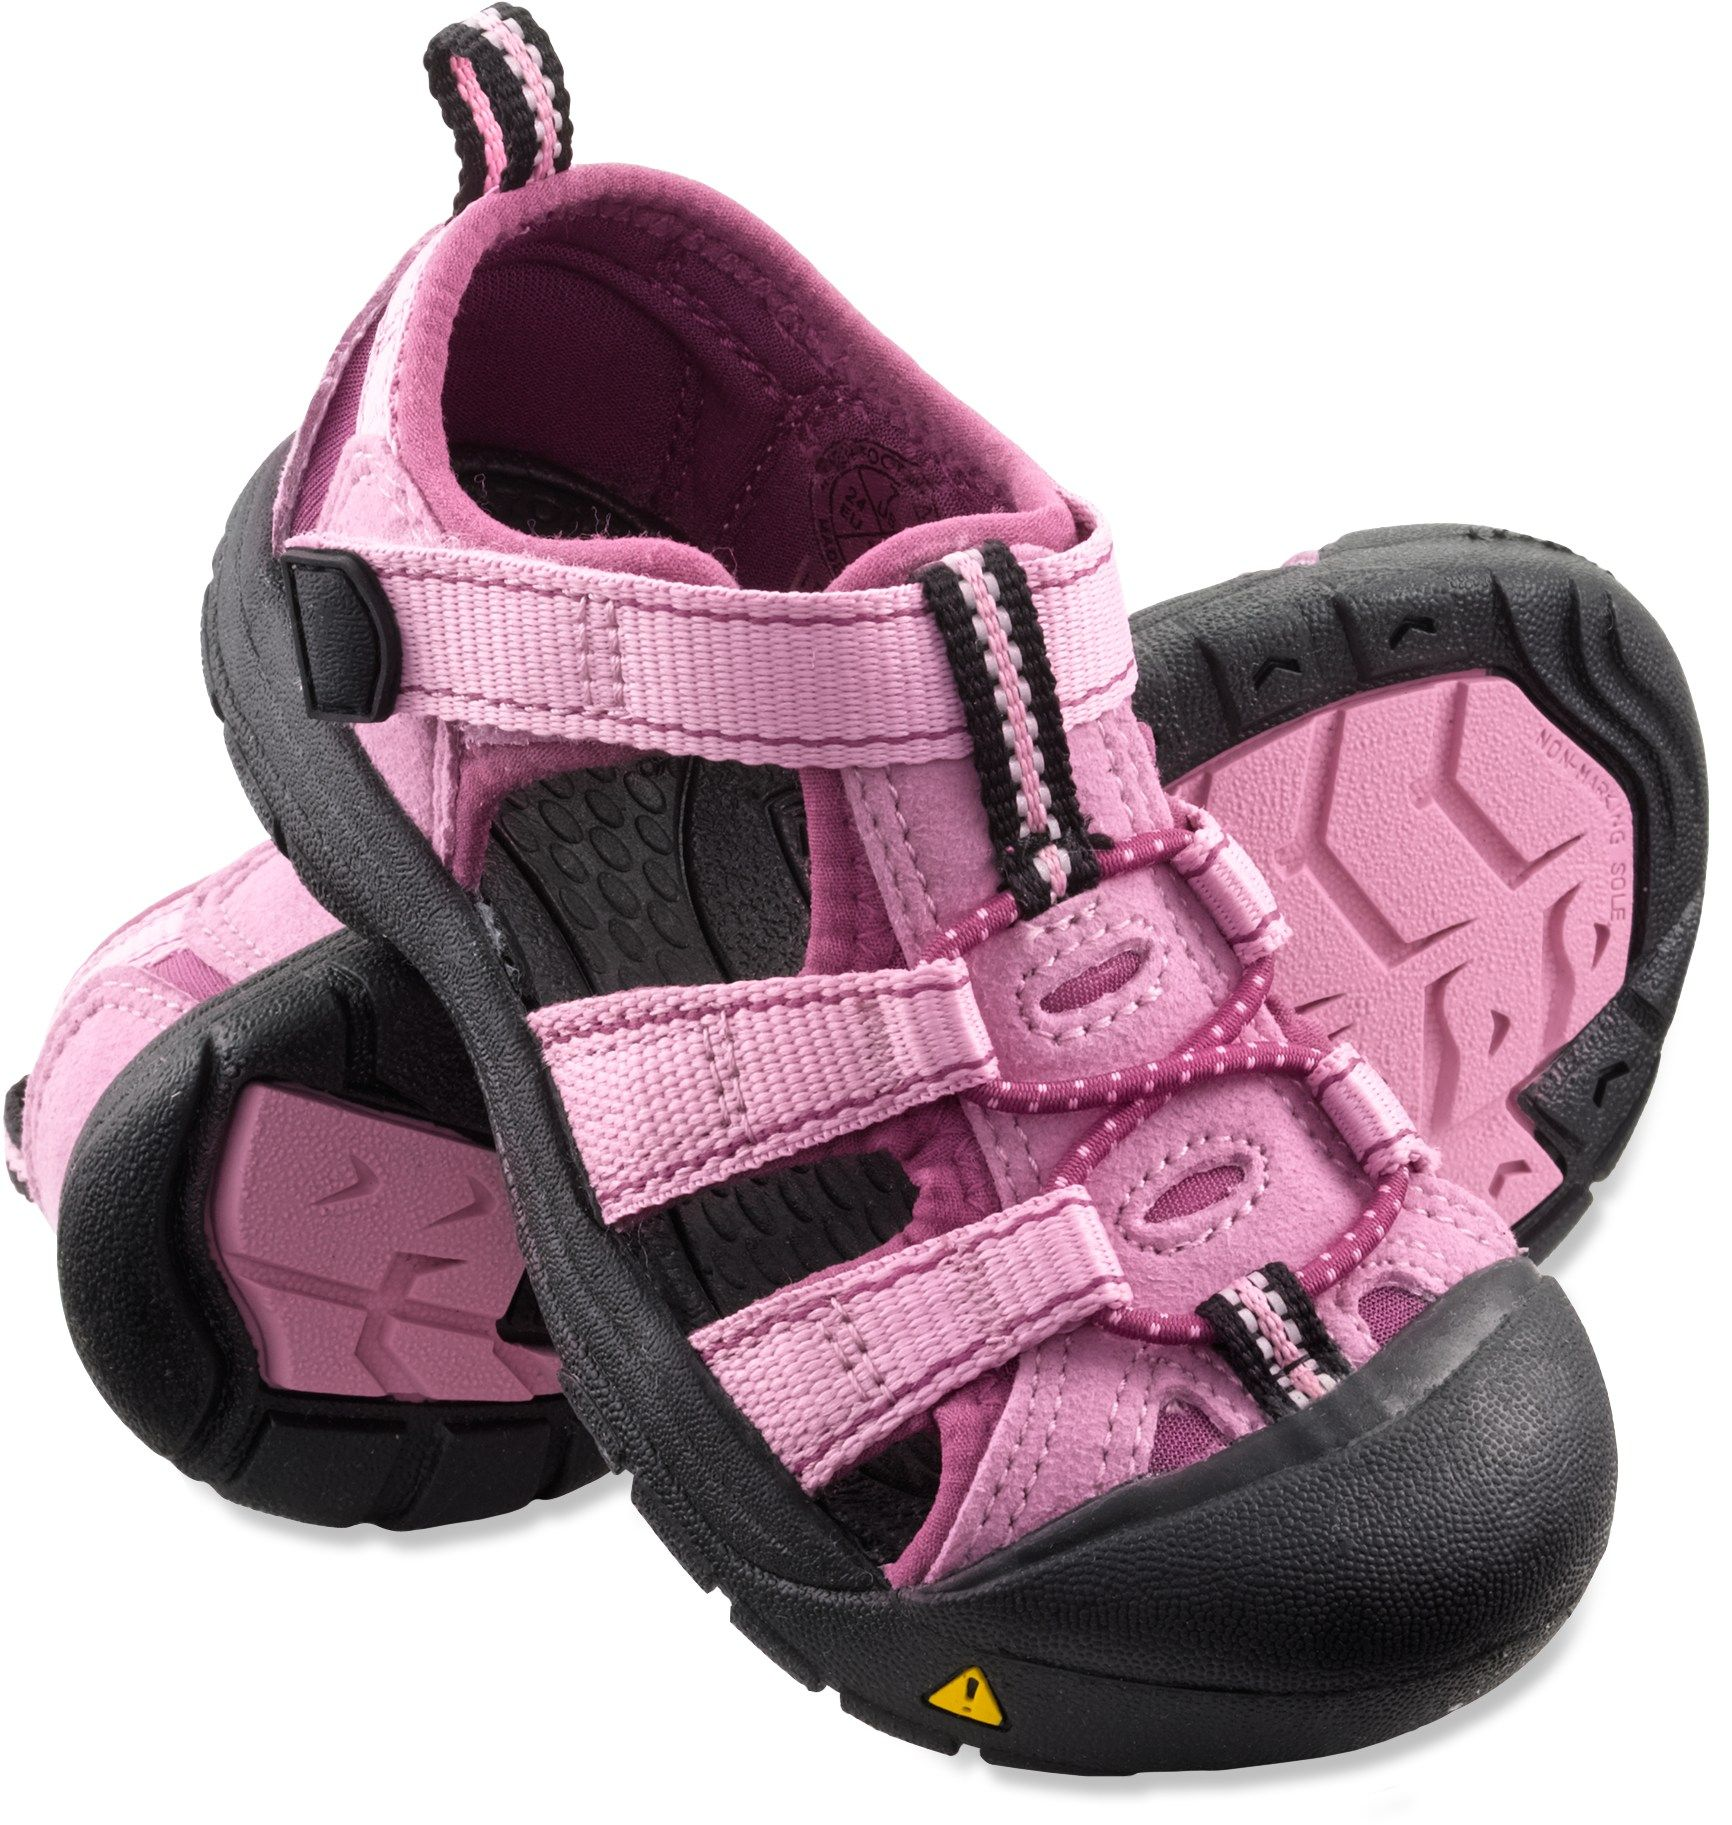 865624267697 Best water shoes for kids! My daughter has narrow feet and these are the  ONLY sandals that don t fall right off of her feet. Perfect for the beach  or the ...